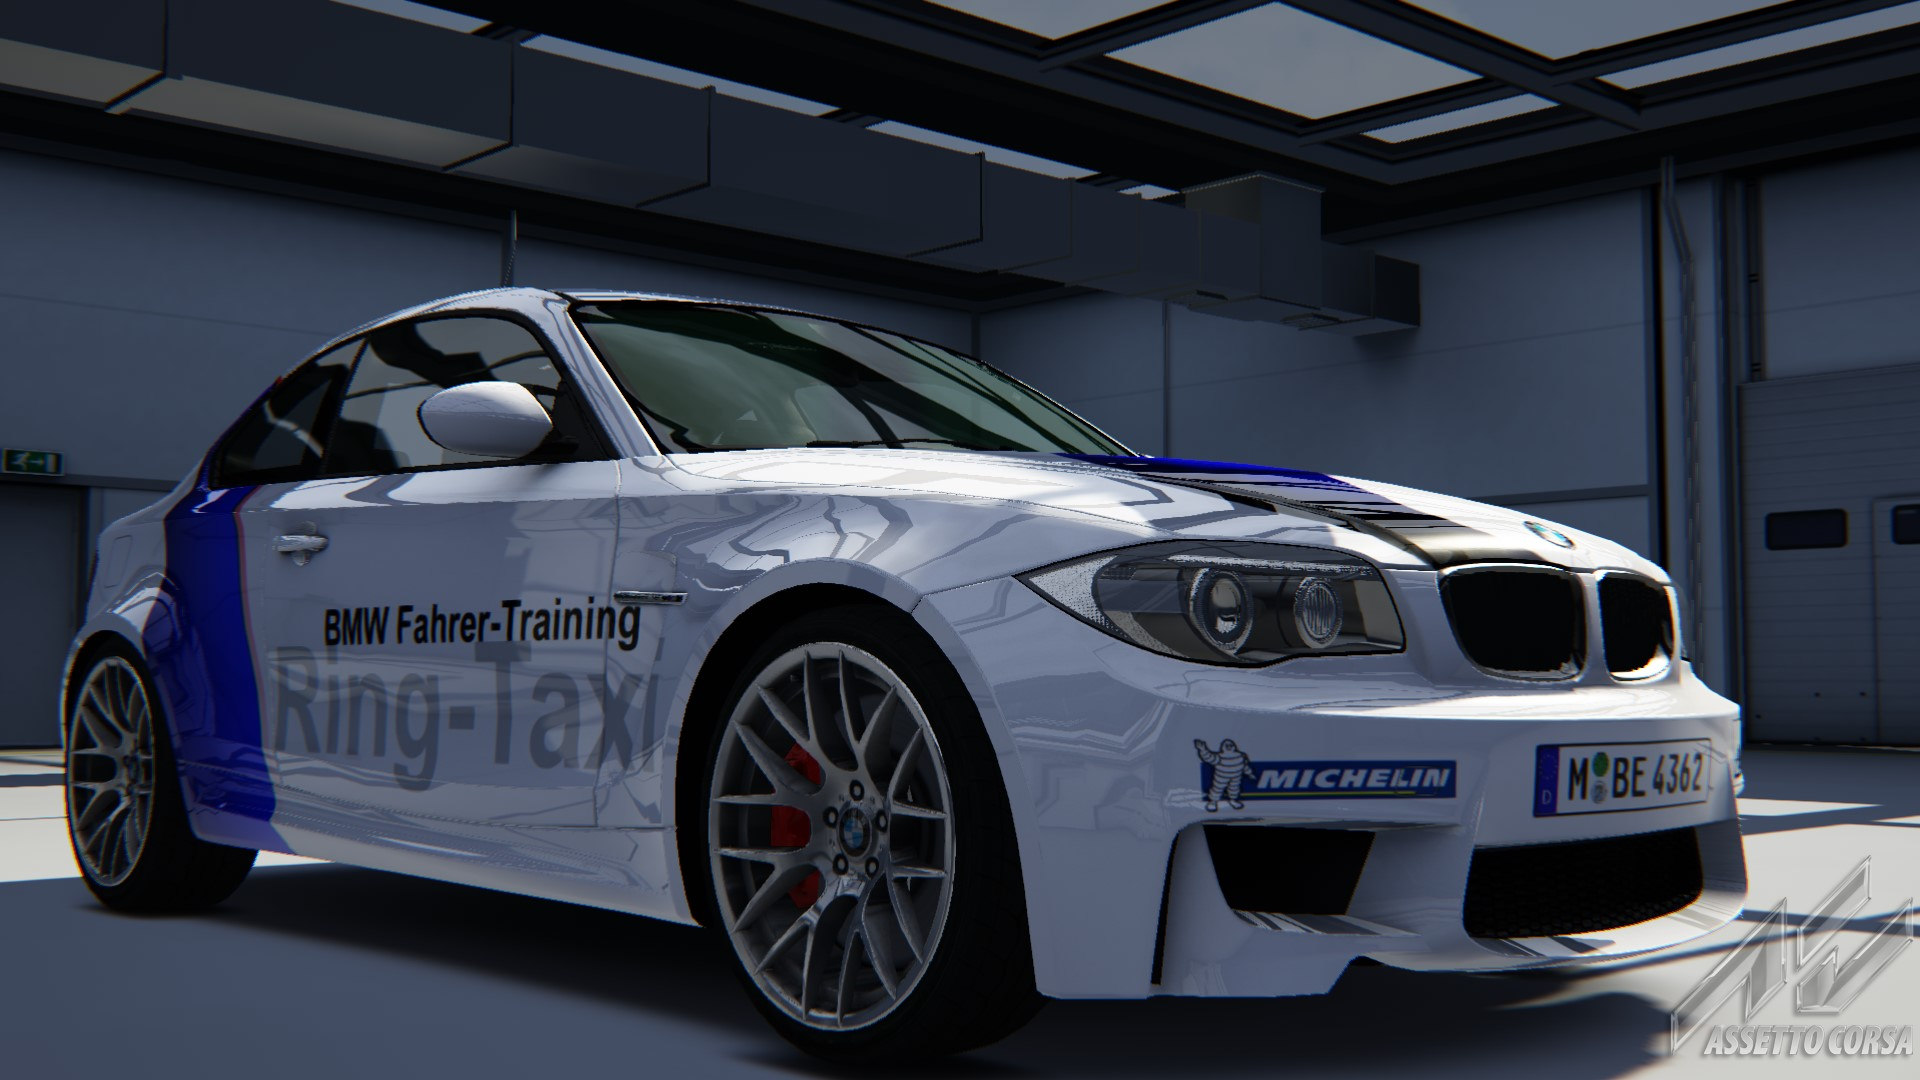 Showroom_bmw_1m_18-8-2014-14-2-32.jpg